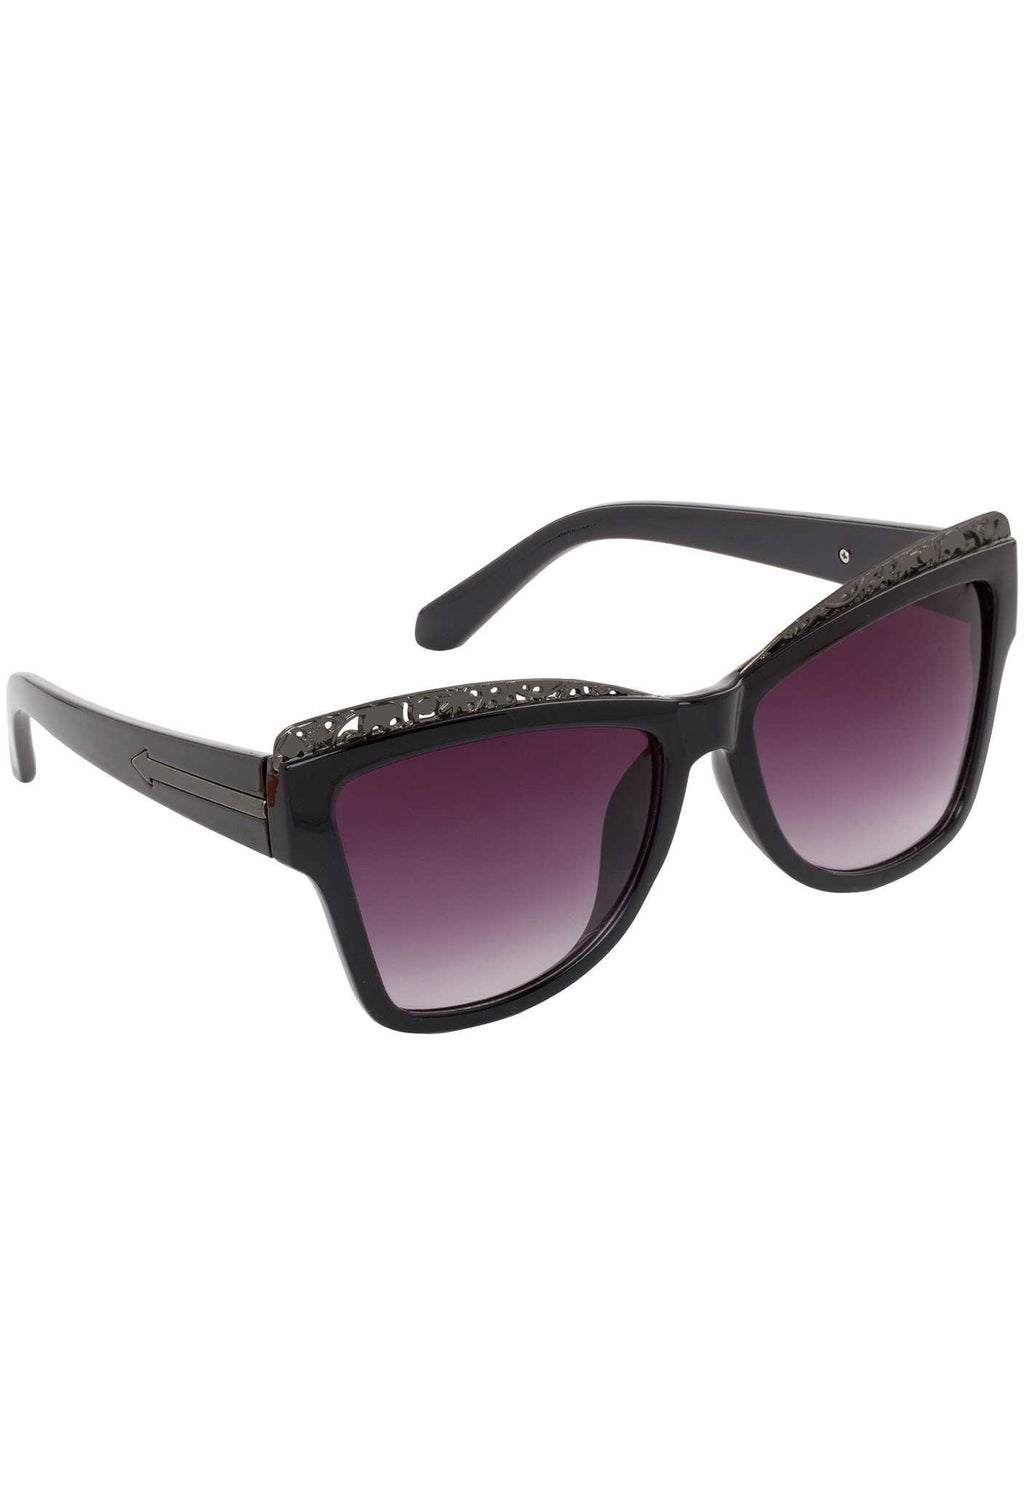 Accessories - Jungle Babe Sunglasses In Charcoal